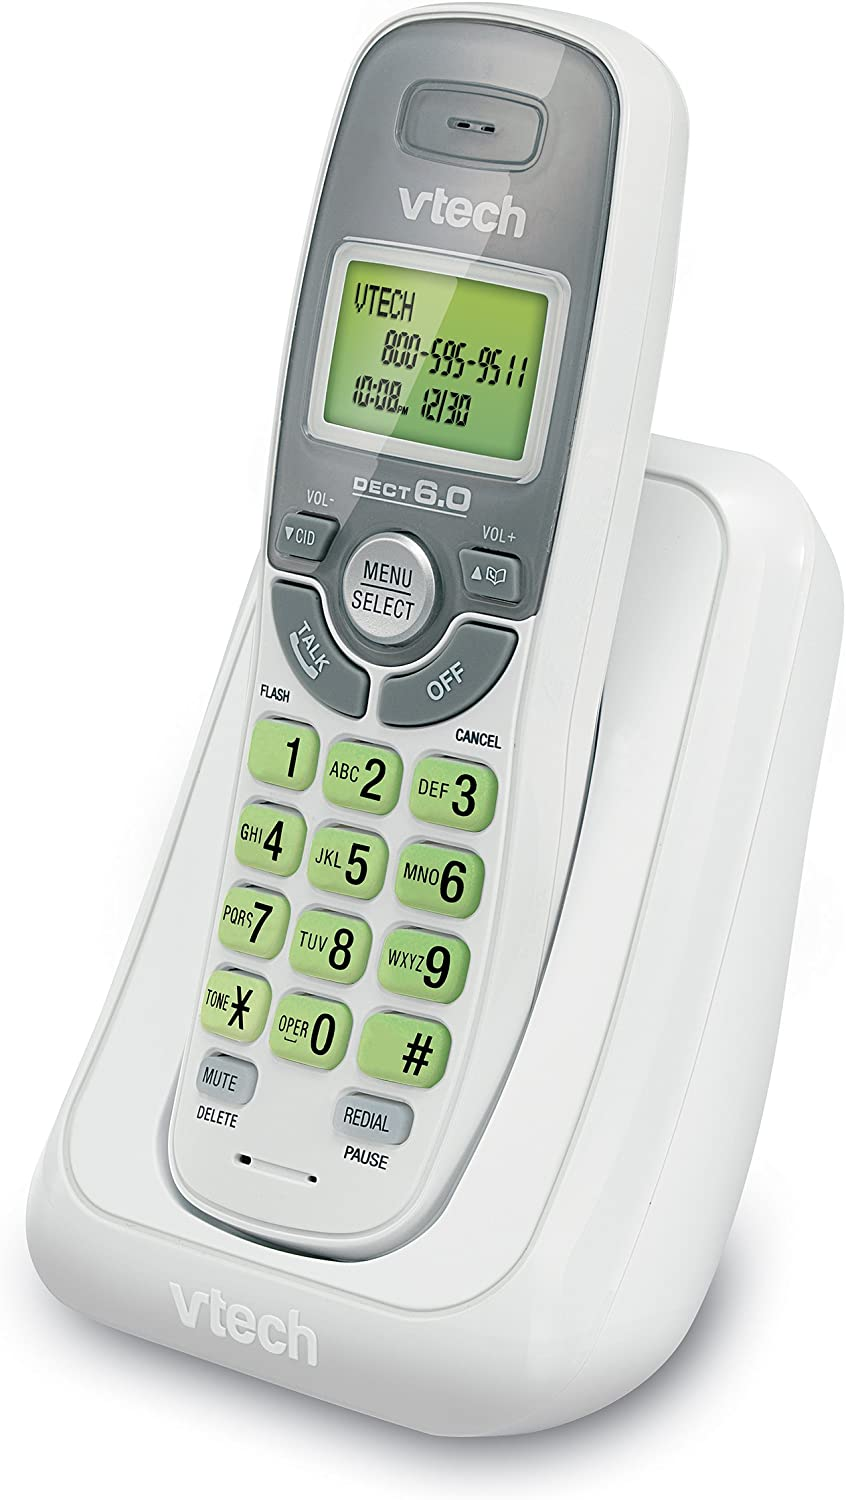 VTech CS6114 DECT 6.0 Cordless Phone with Caller ID/Call Waiting, White/Grey with 1 Handset: Electronics